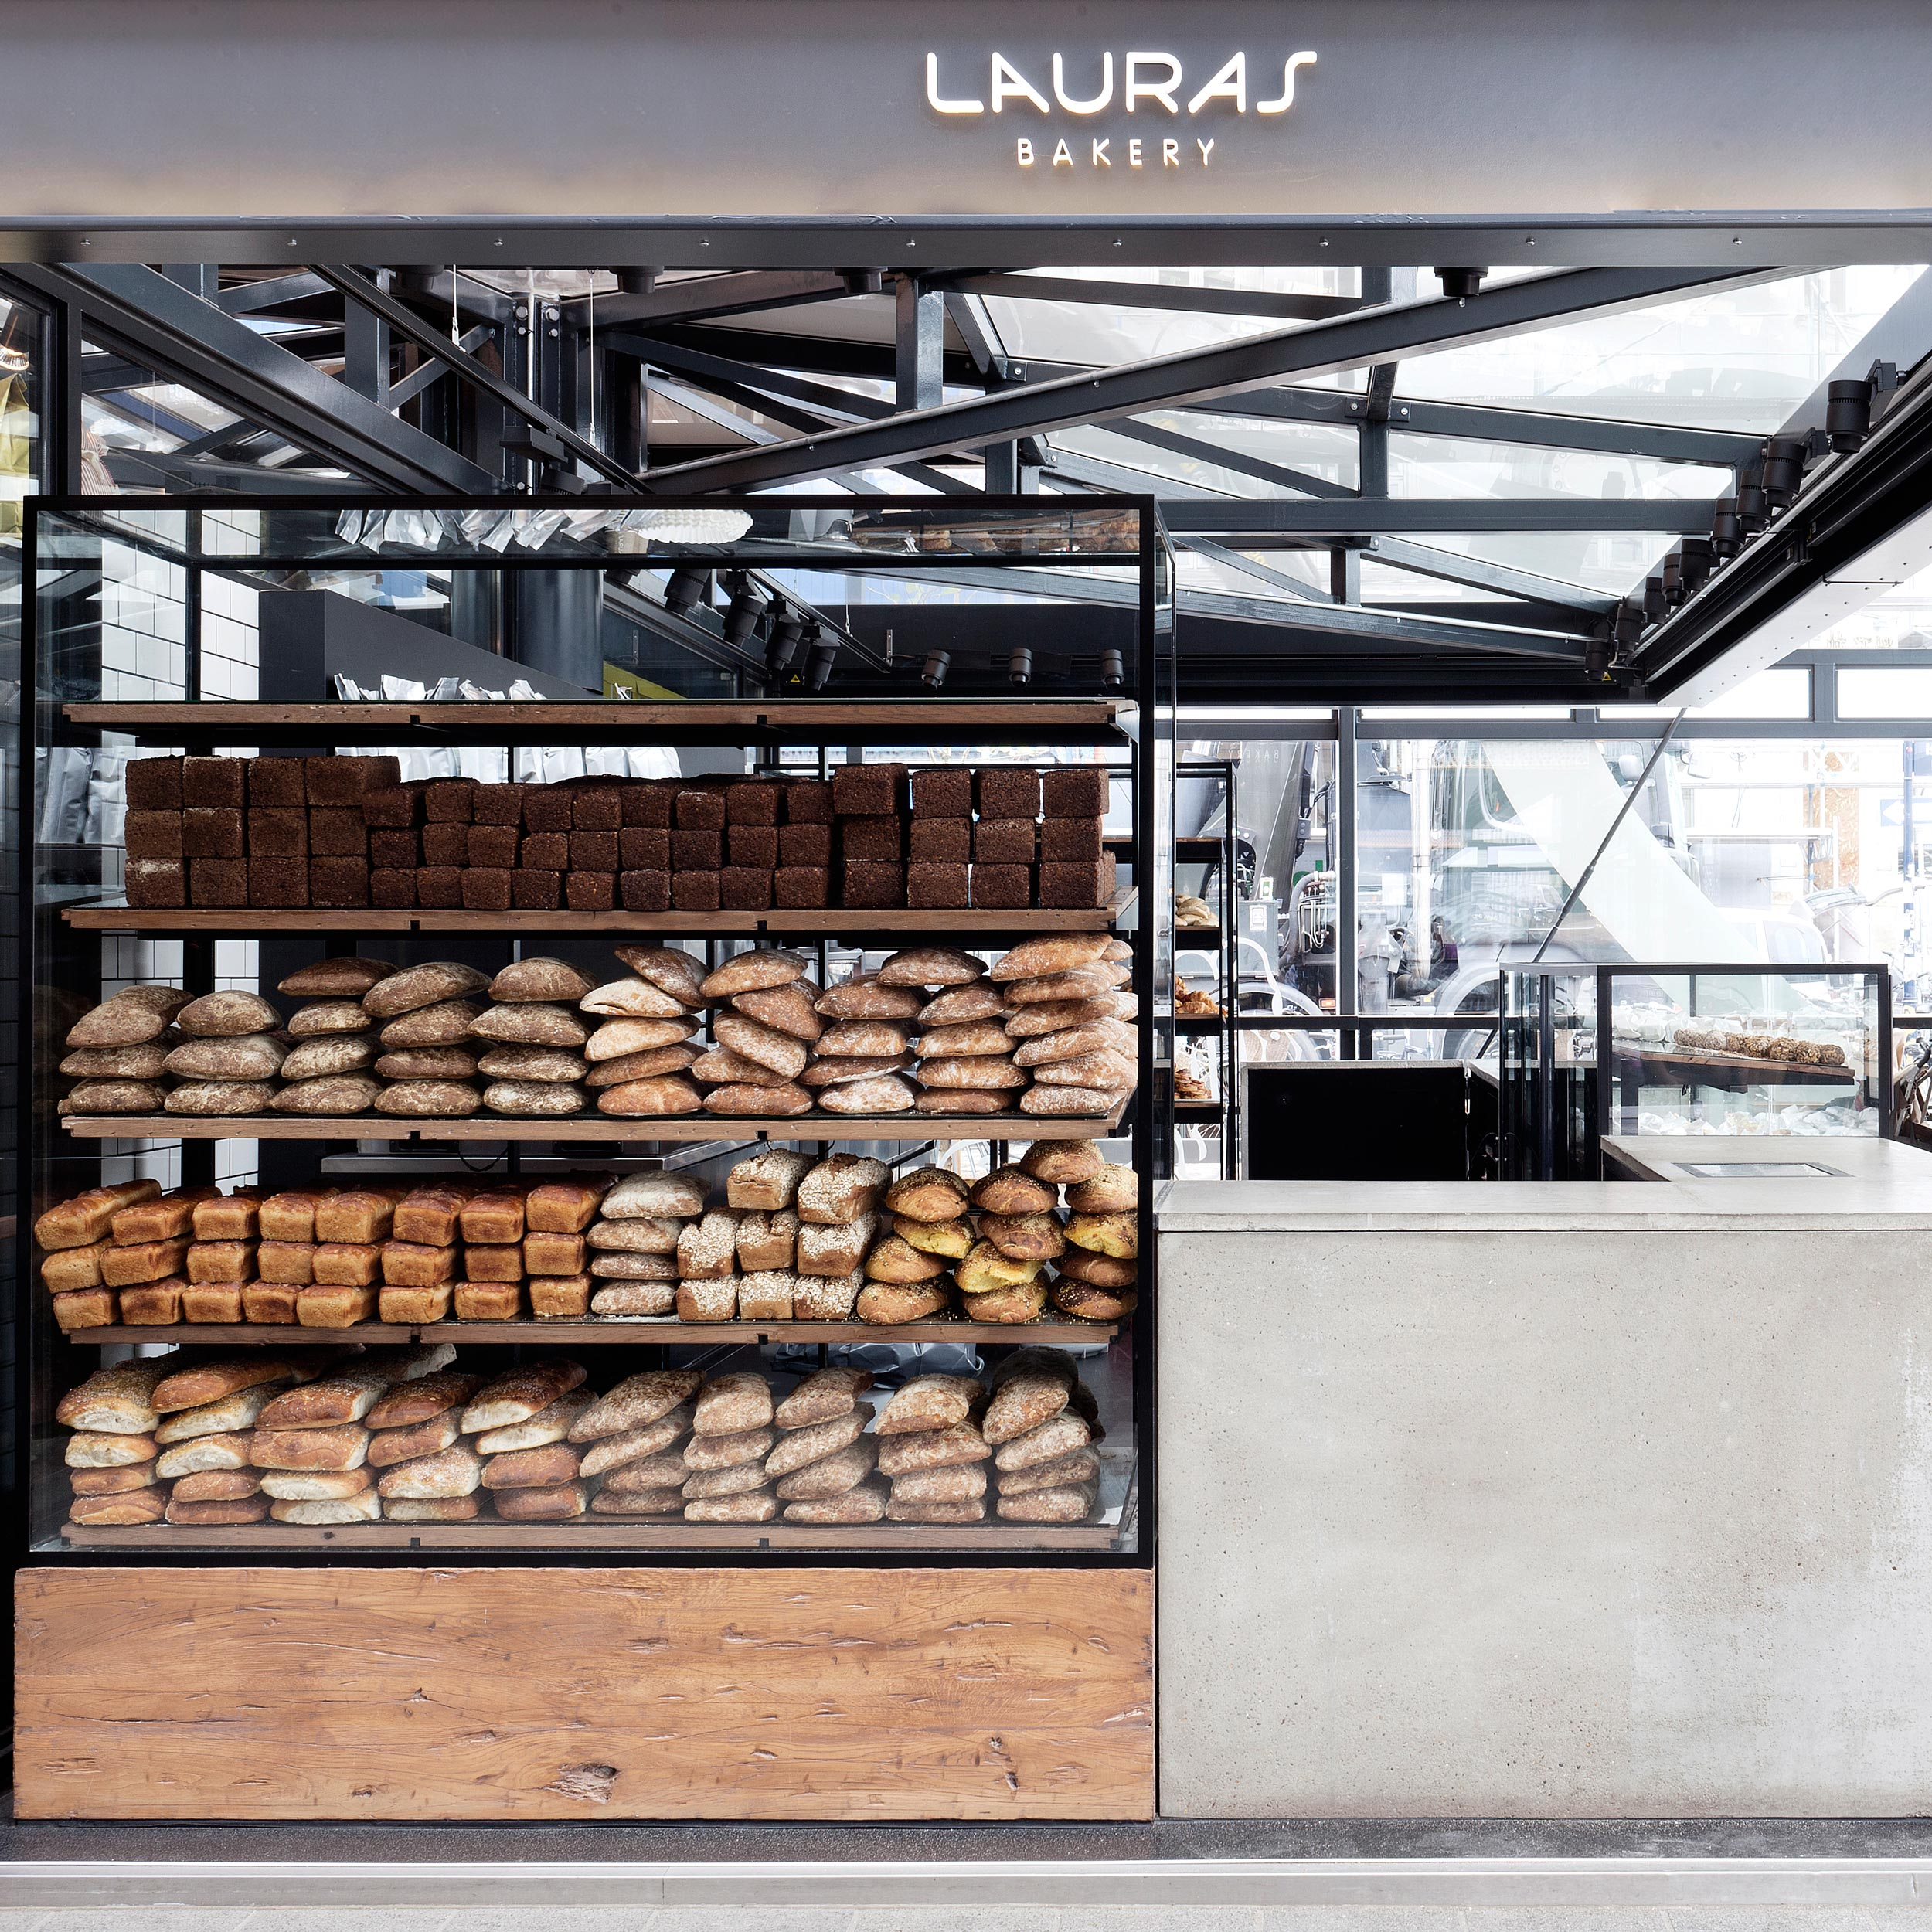 Design of the store interiors of Danish bakery Lauras including custom-designed shelves to display the products